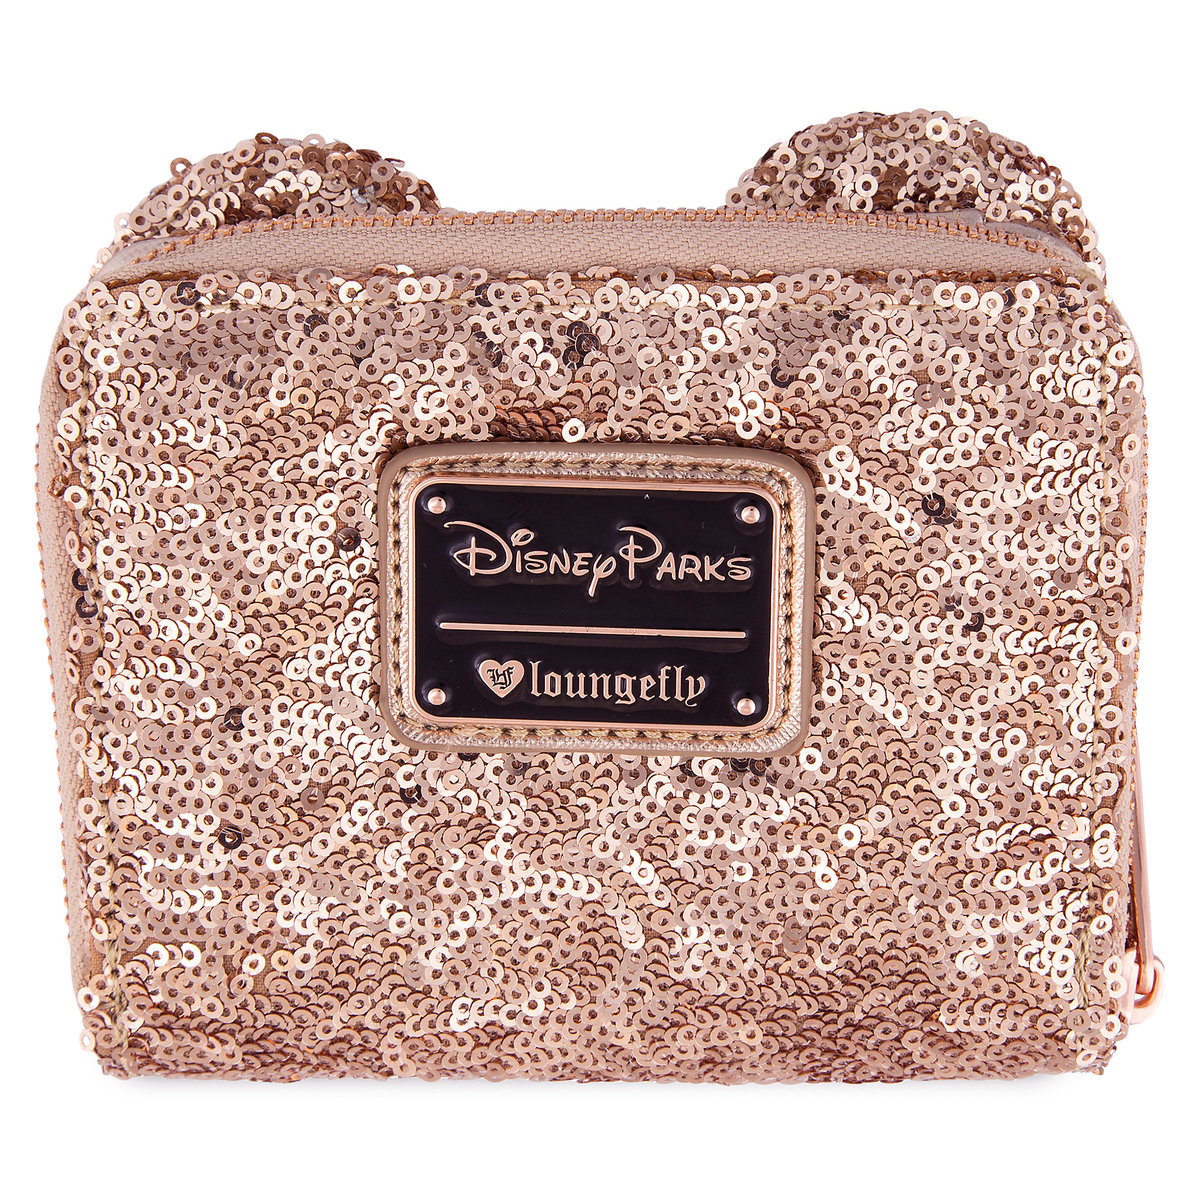 Disney Parks Wallet - Rose Gold Zip Around By Loungefly